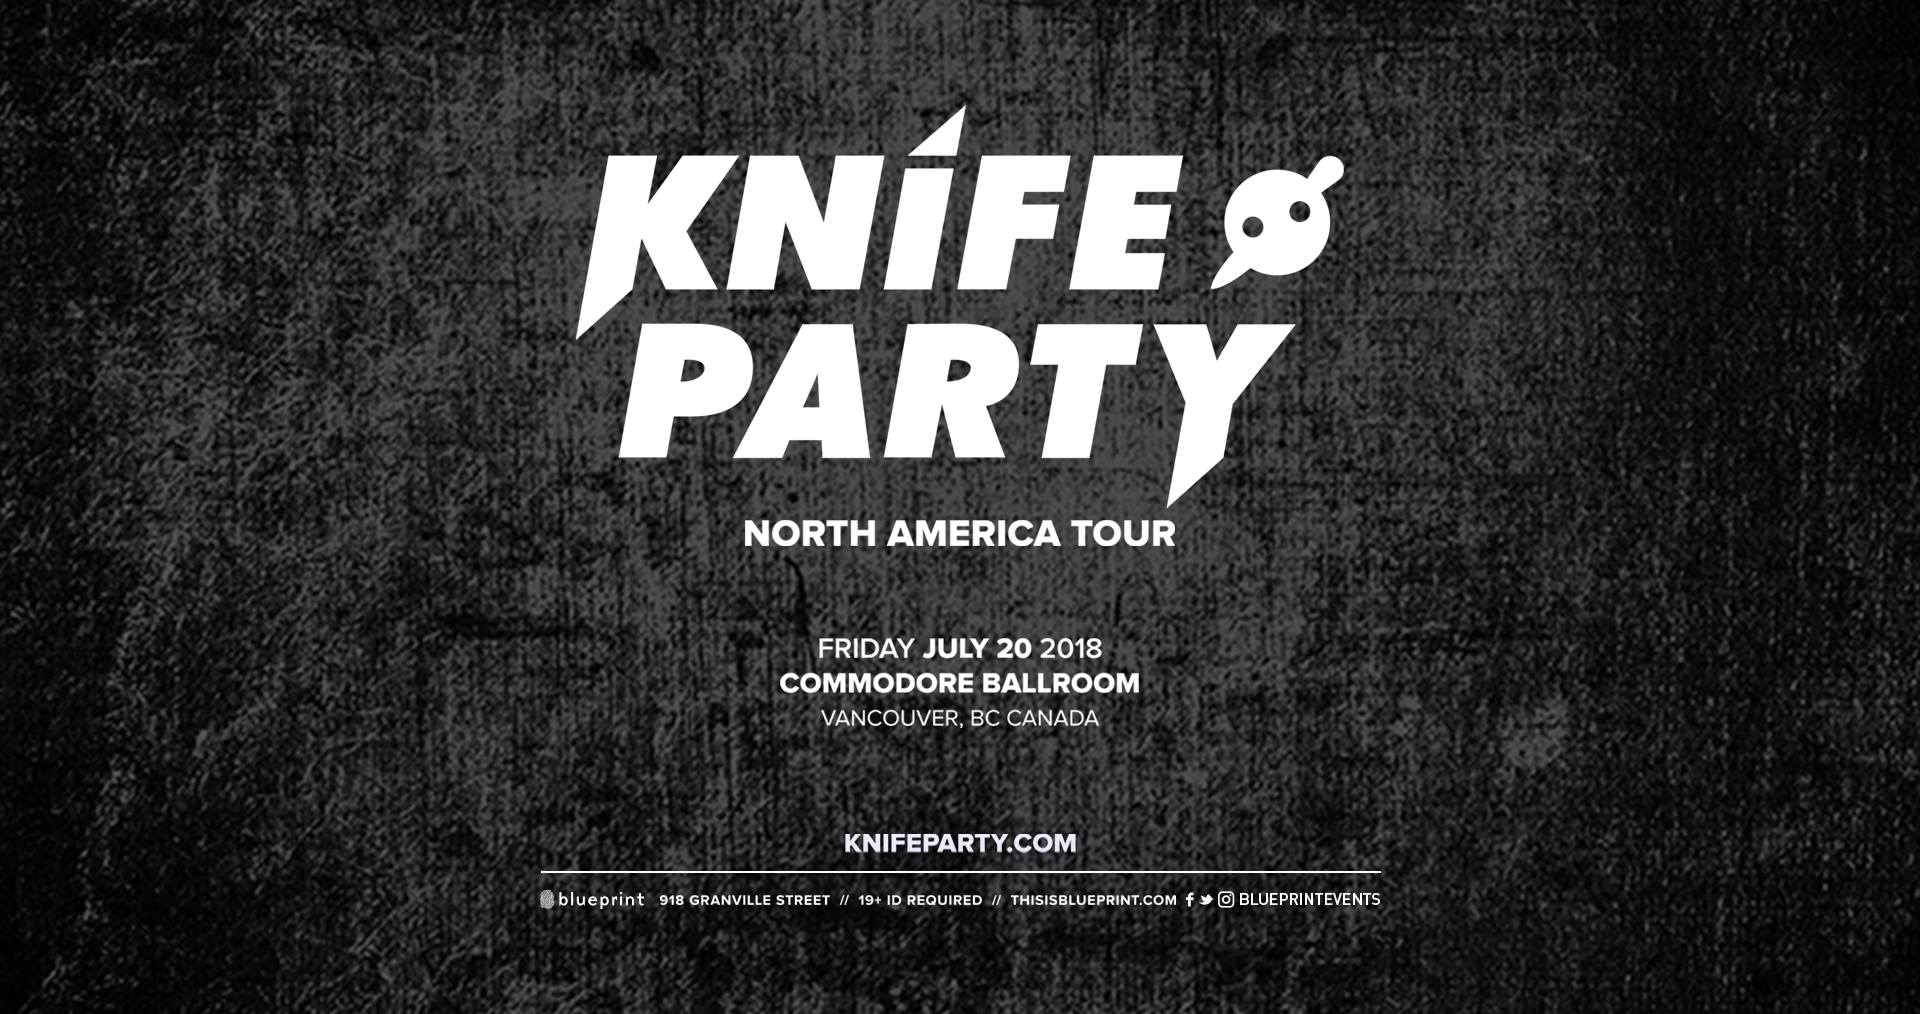 Knife party city soundcheck knife party malvernweather Image collections